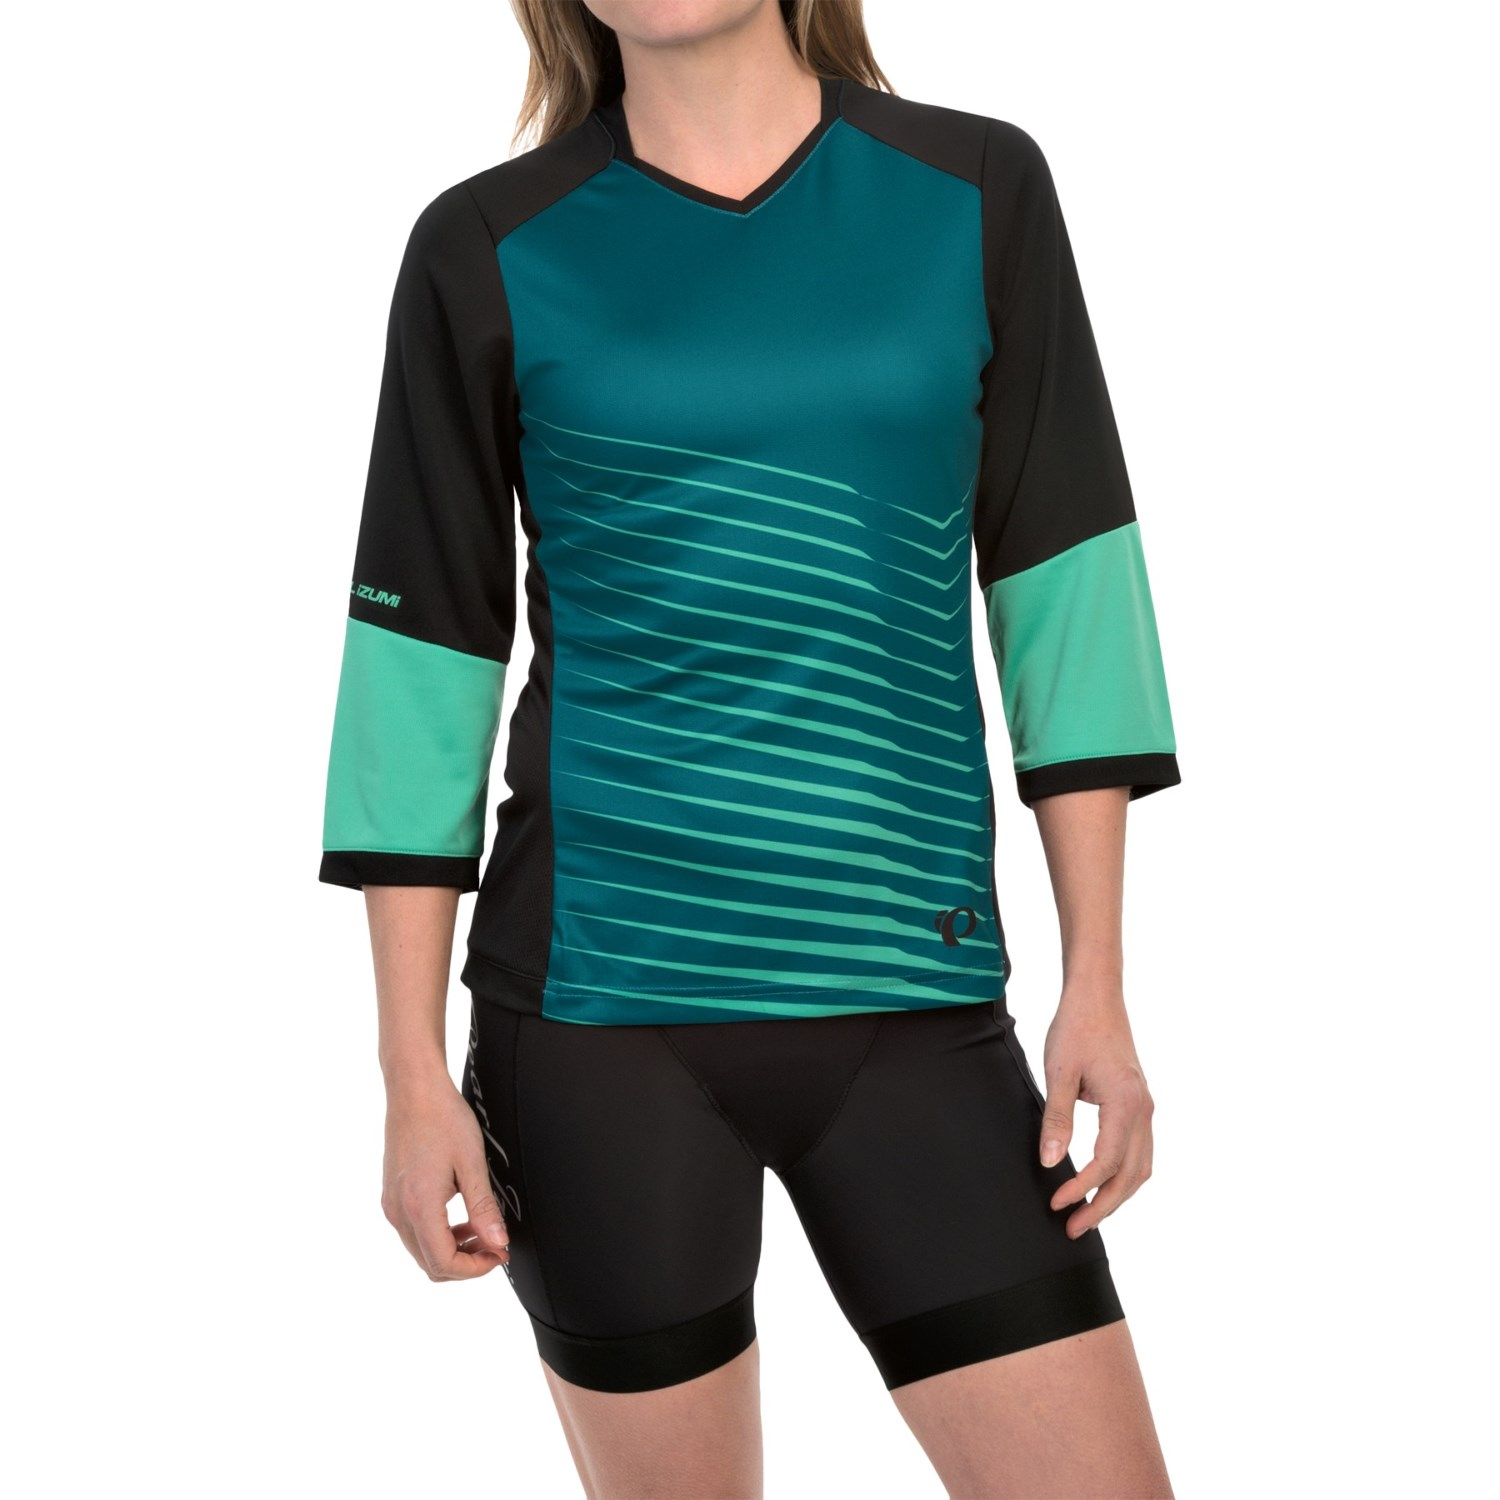 Pearl izumi launch cycling jersey for women save 33 for Pearl izumi cycling shirt